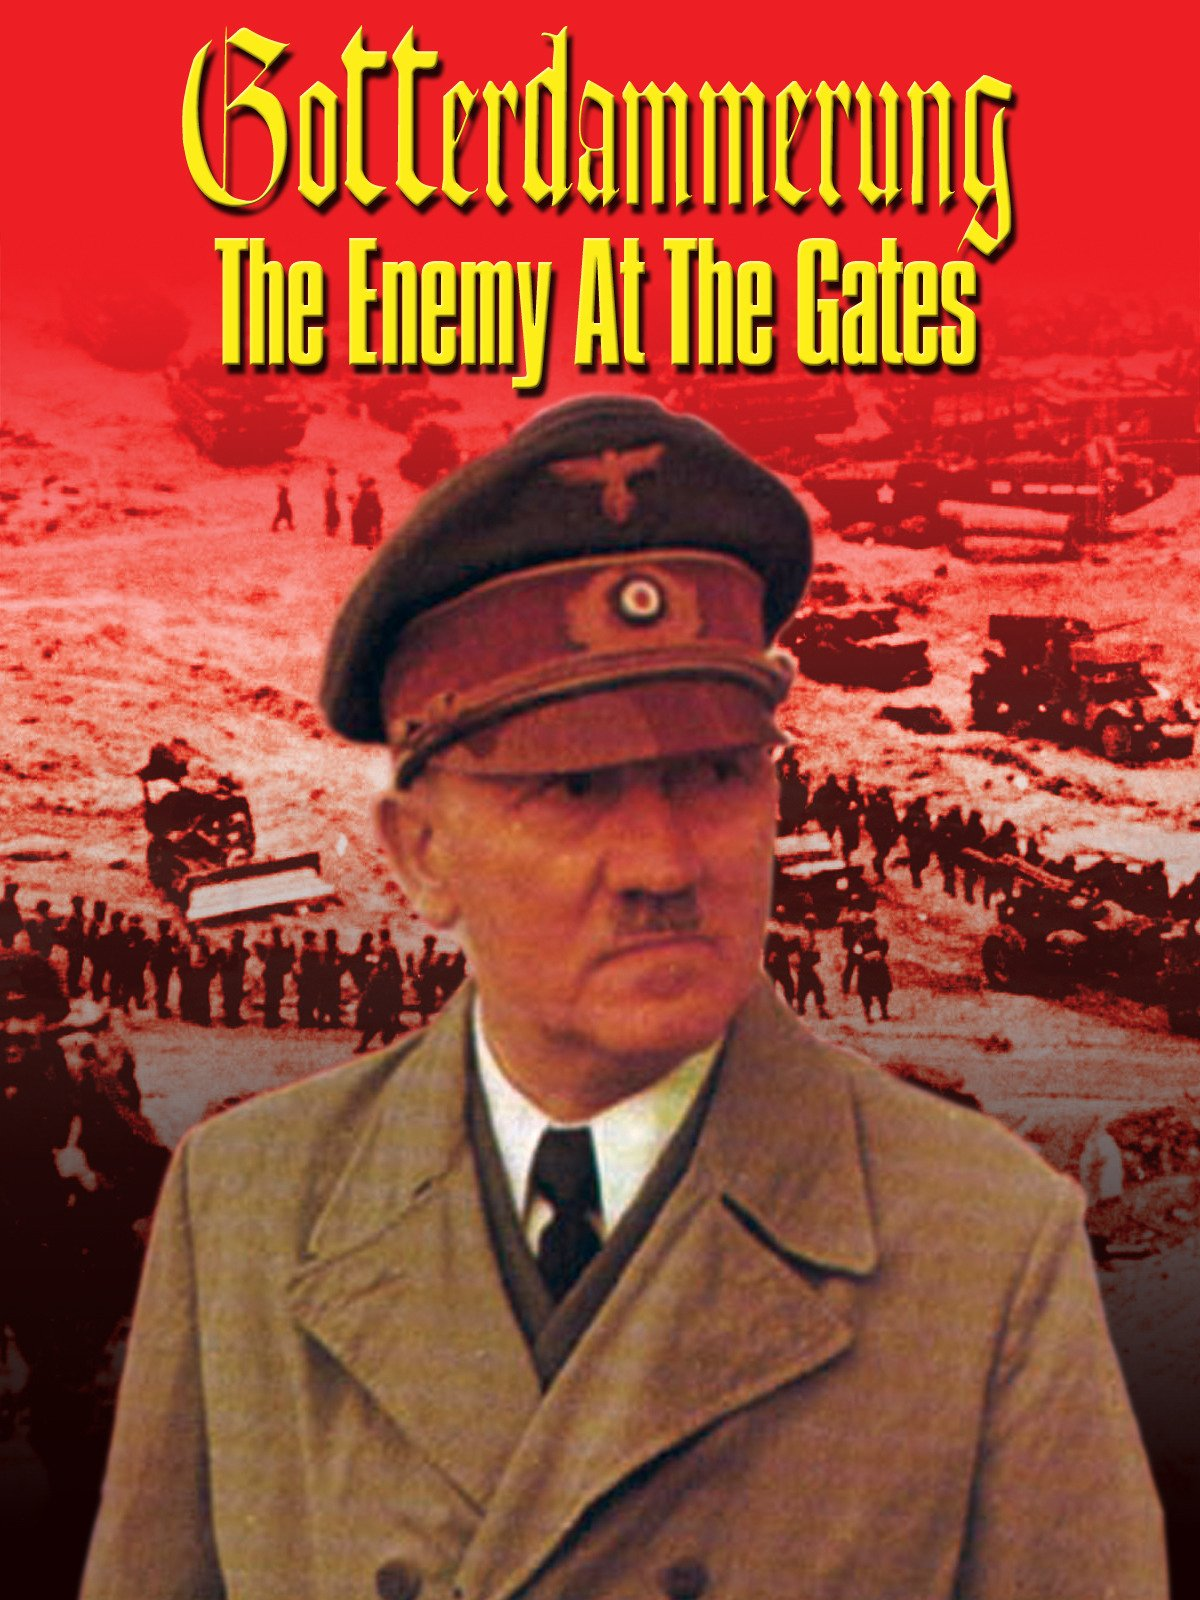 Goettedaemmerung: The Enemy At The Gates on Amazon Prime Video UK